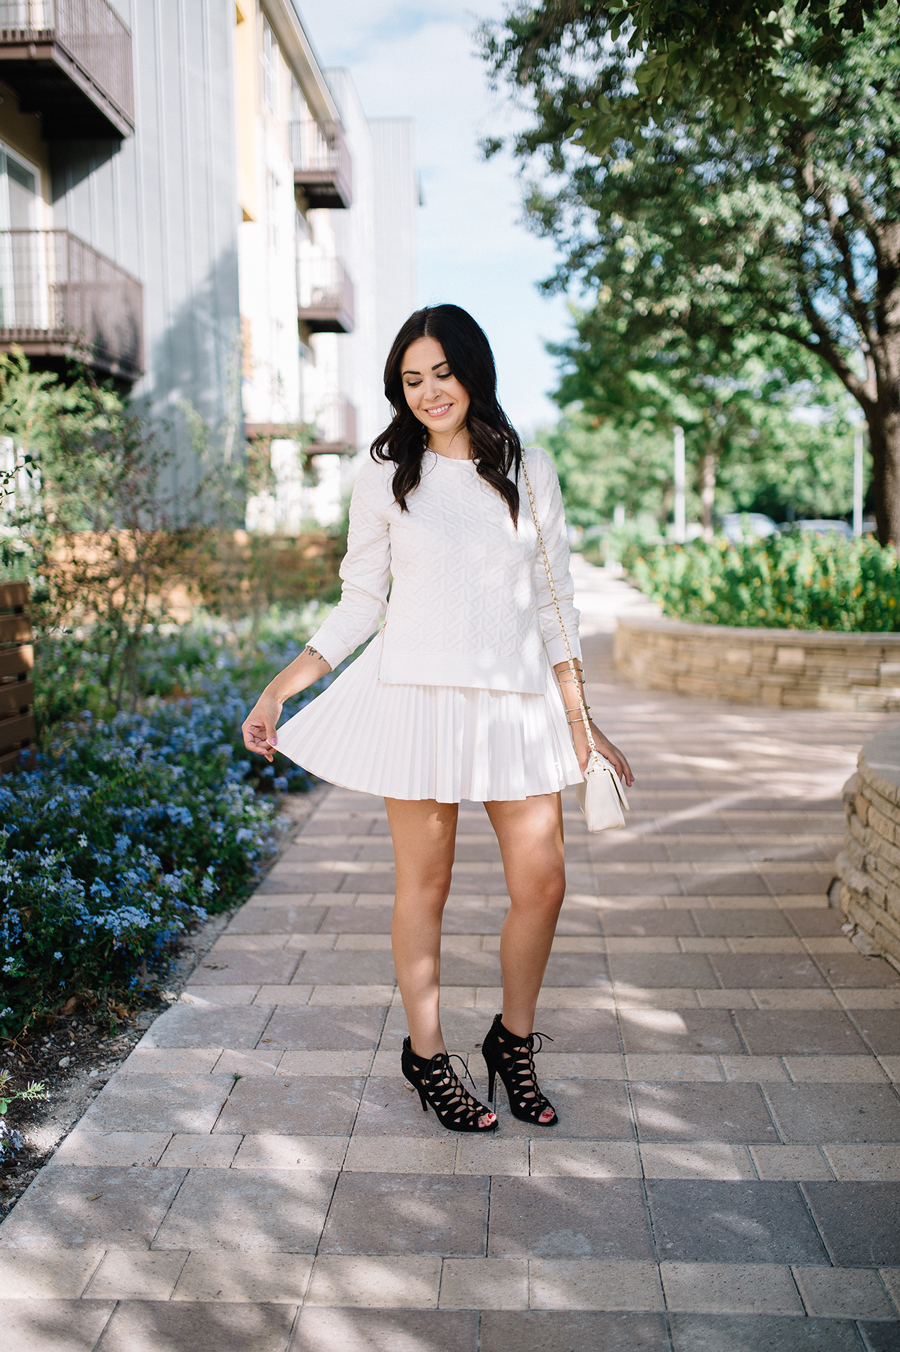 FIXIN-TO-THRILL-CARLOS-BARRON-PHOTOGRAPHY-FALL-NUDE-OCTOBER-CHIC-ATX-AUSTIN-STYLE-BLOG-BLACK-WHITE-LACE-SANDALS-TRENDS-FW15-TRENDY-CHIC-GLAM-FASHION-TEXAS-10